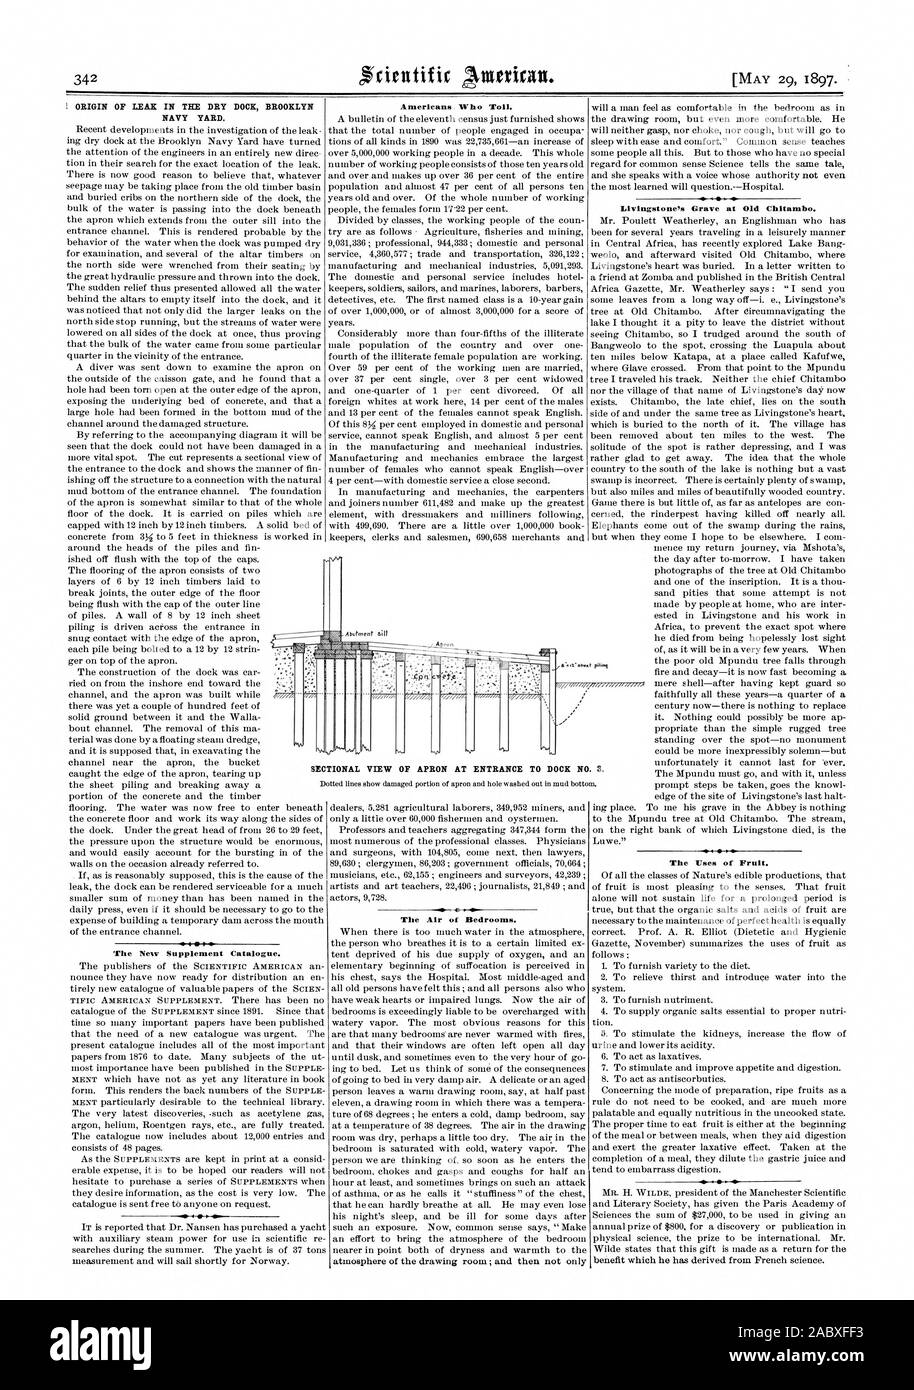 ORIGIN OF LEAK IN THE DRY DOCK BROOKLYN NAVY YARD. The New Supplement Catalogue. Americans Who Toil. TOR The Air of Bedrooms. Livingstone's Grave at Old Chitambo. The Uses of Fruit. SECTIONAL VIEW OF APRON AT ENTRANCE TO DOCK NO. S., scientific american, 1897-05-29 Stock Photo